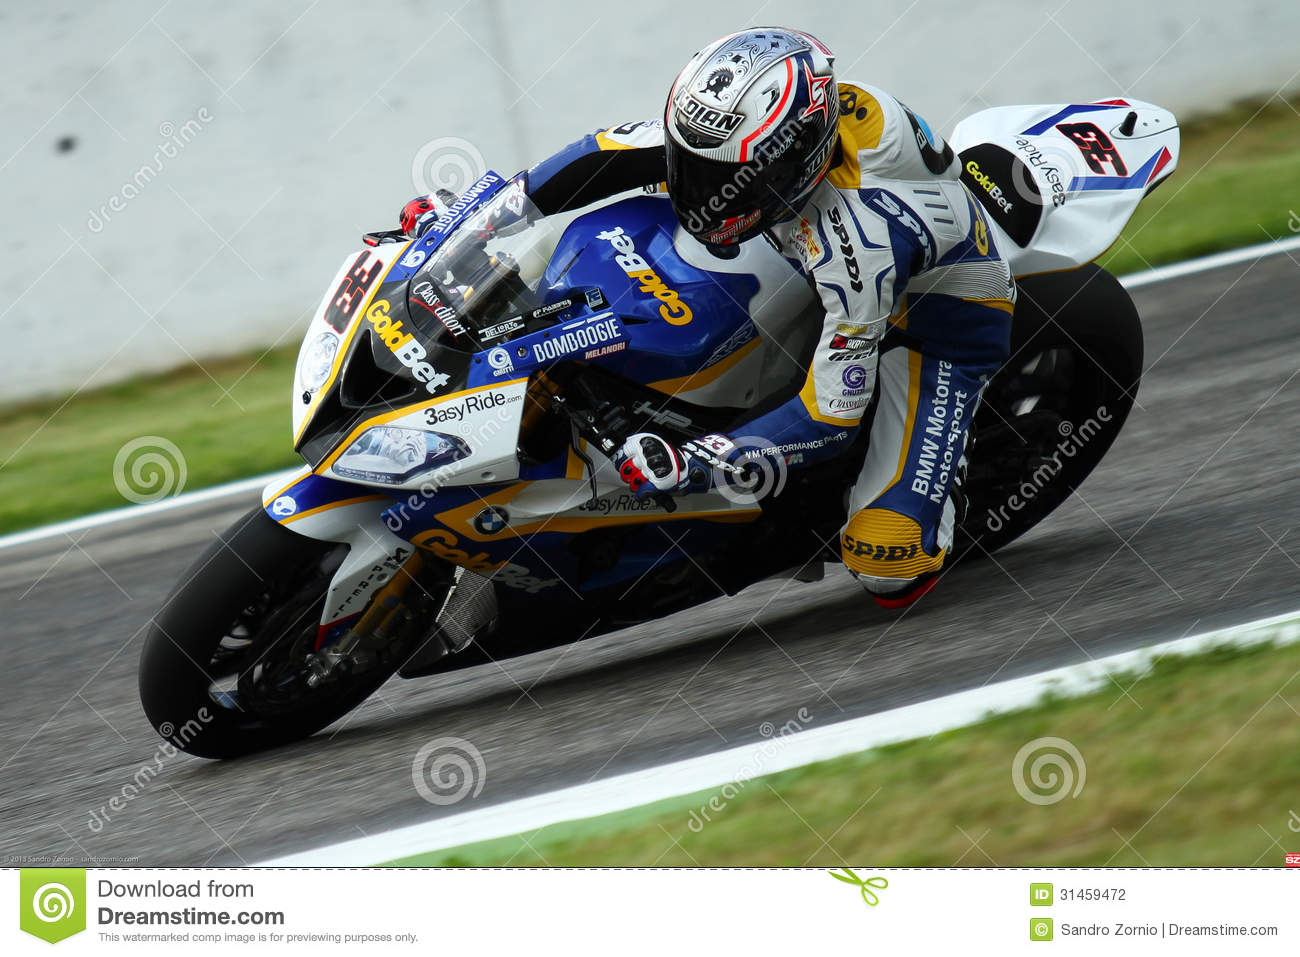 Marco Melandri #33 on BMW S1000 RR with BMW Motorrad GoldBet SBK Team Superbike WSBK